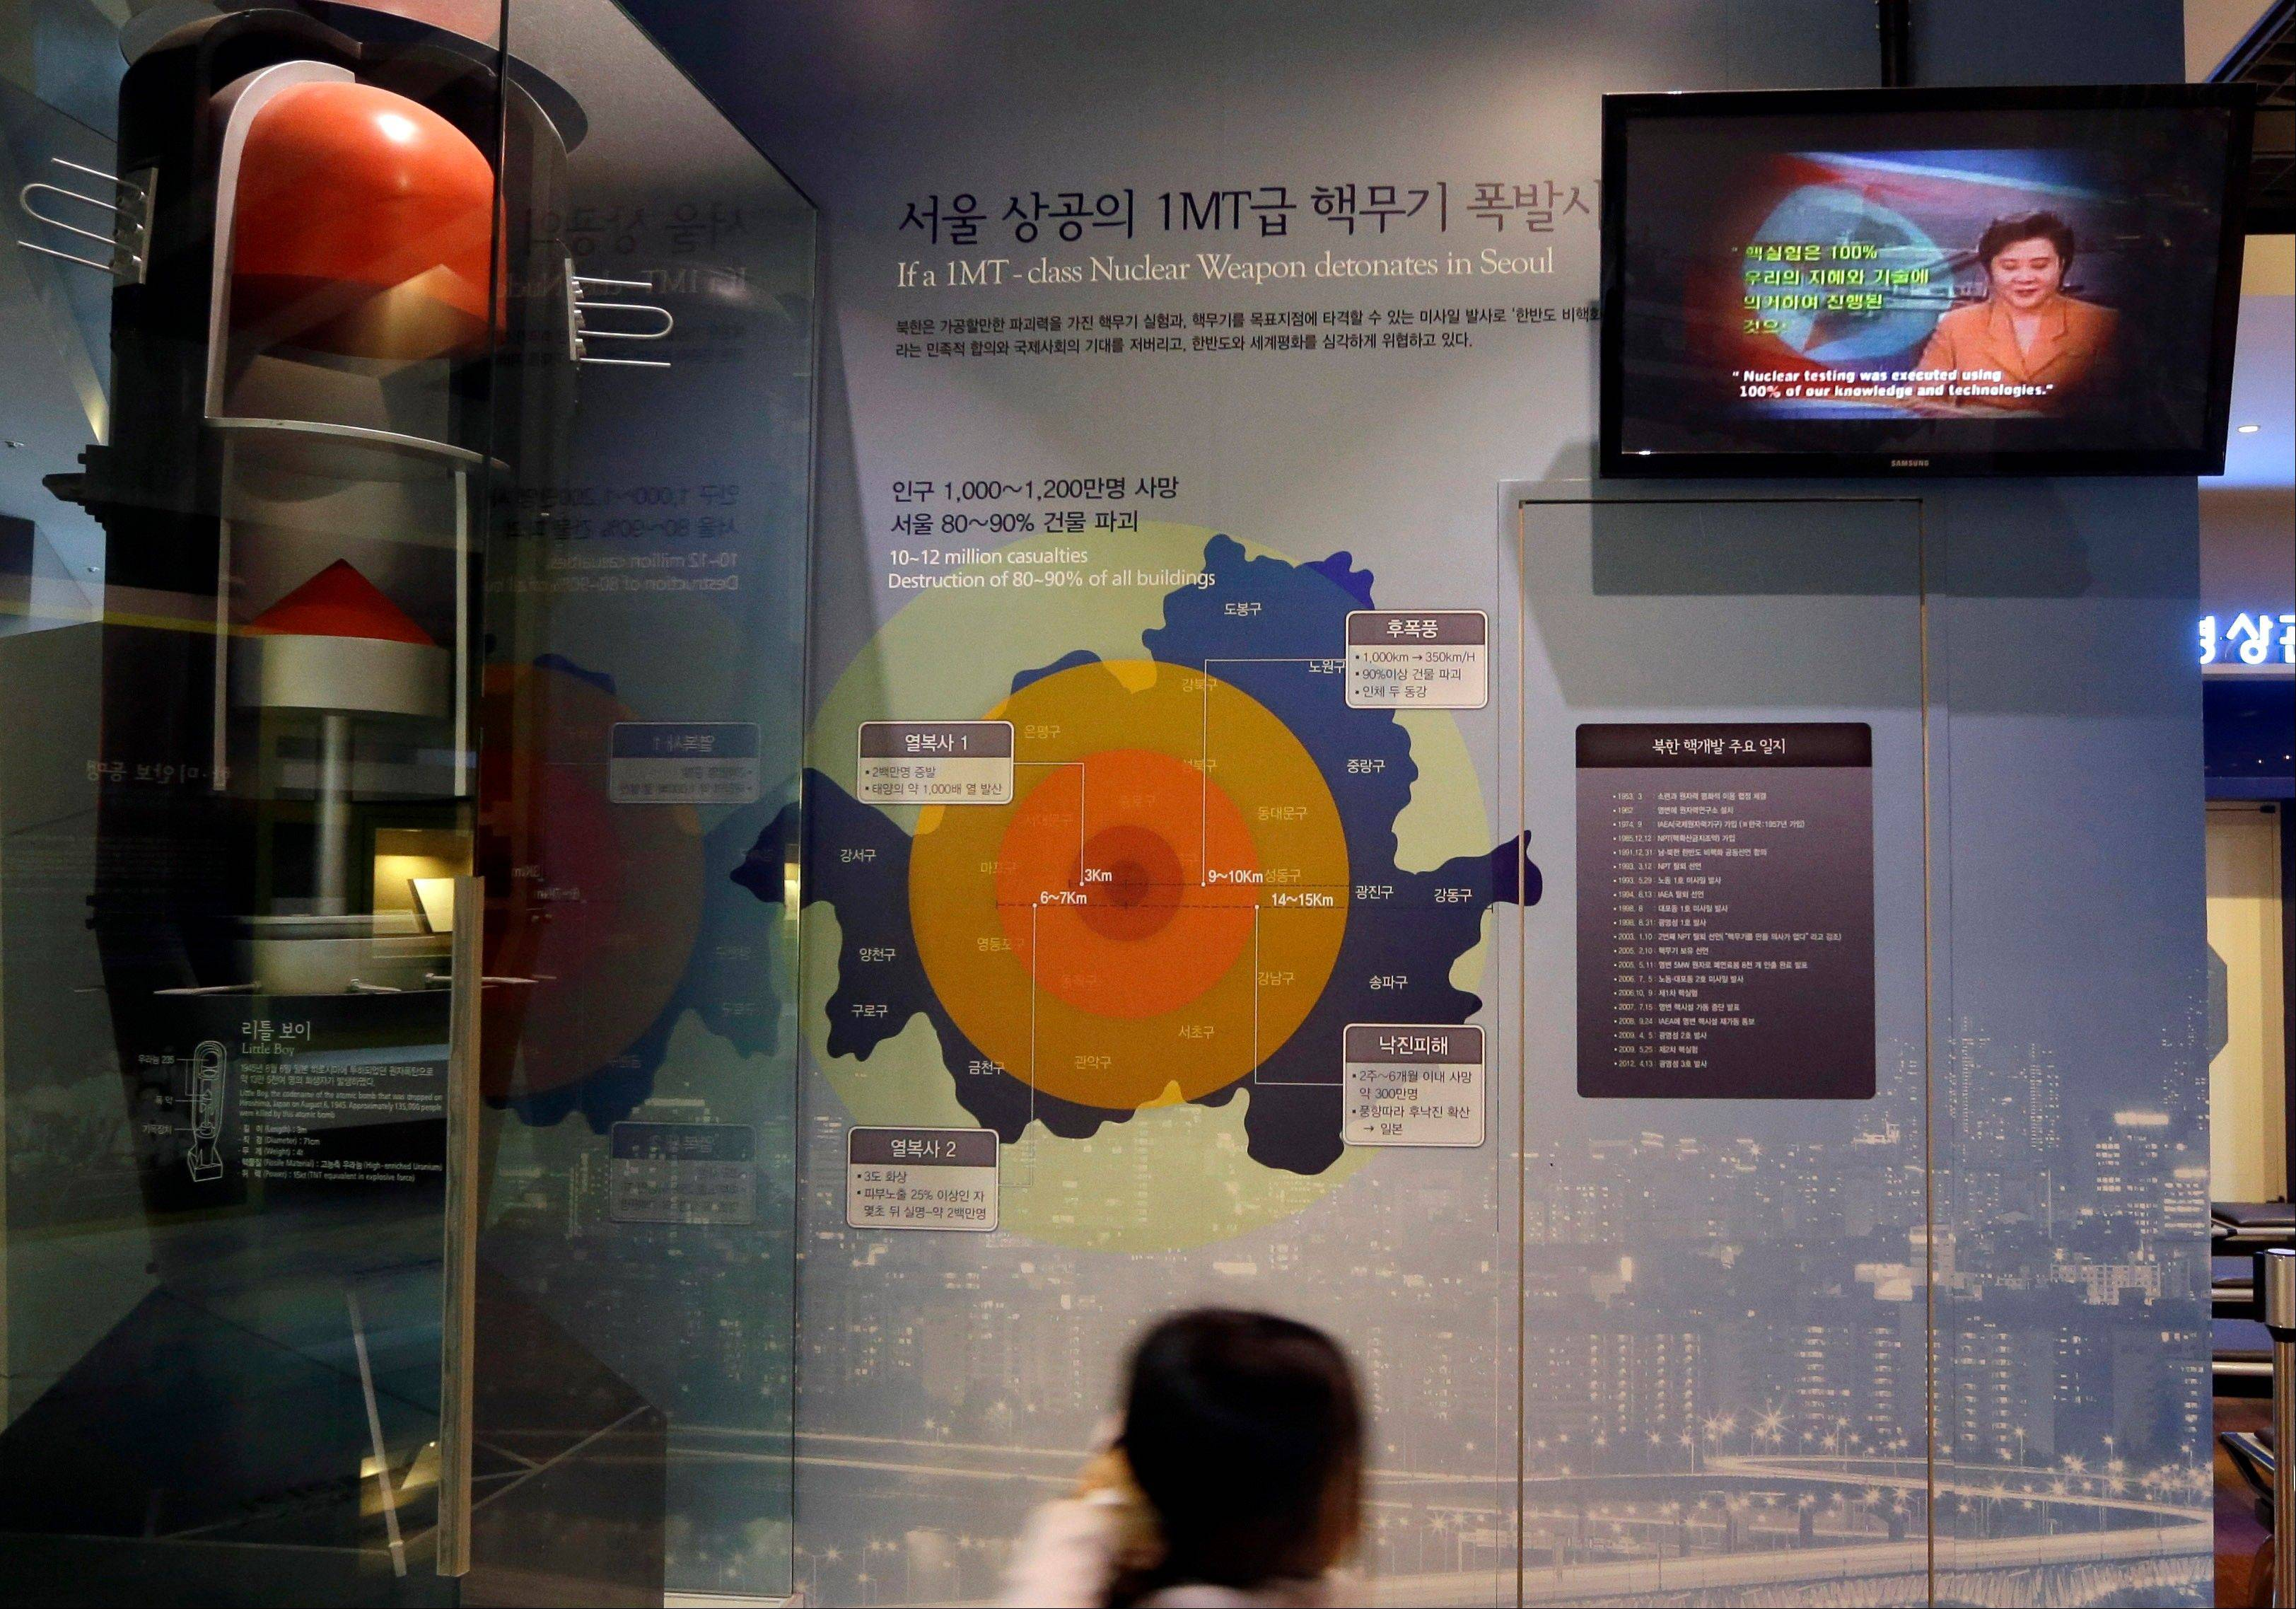 A girl looks at a display on assessment about impact of supposed nuclear attack on Seoul at the Korea War Memorial Museum in Seoul, South Korea, Tuesday, Jan. 29, 2013. North Korea appears all set to detonate an atomic device, but confirming the explosion when it takes place will be virtually impossible for outsiders, specialists said Tuesday.